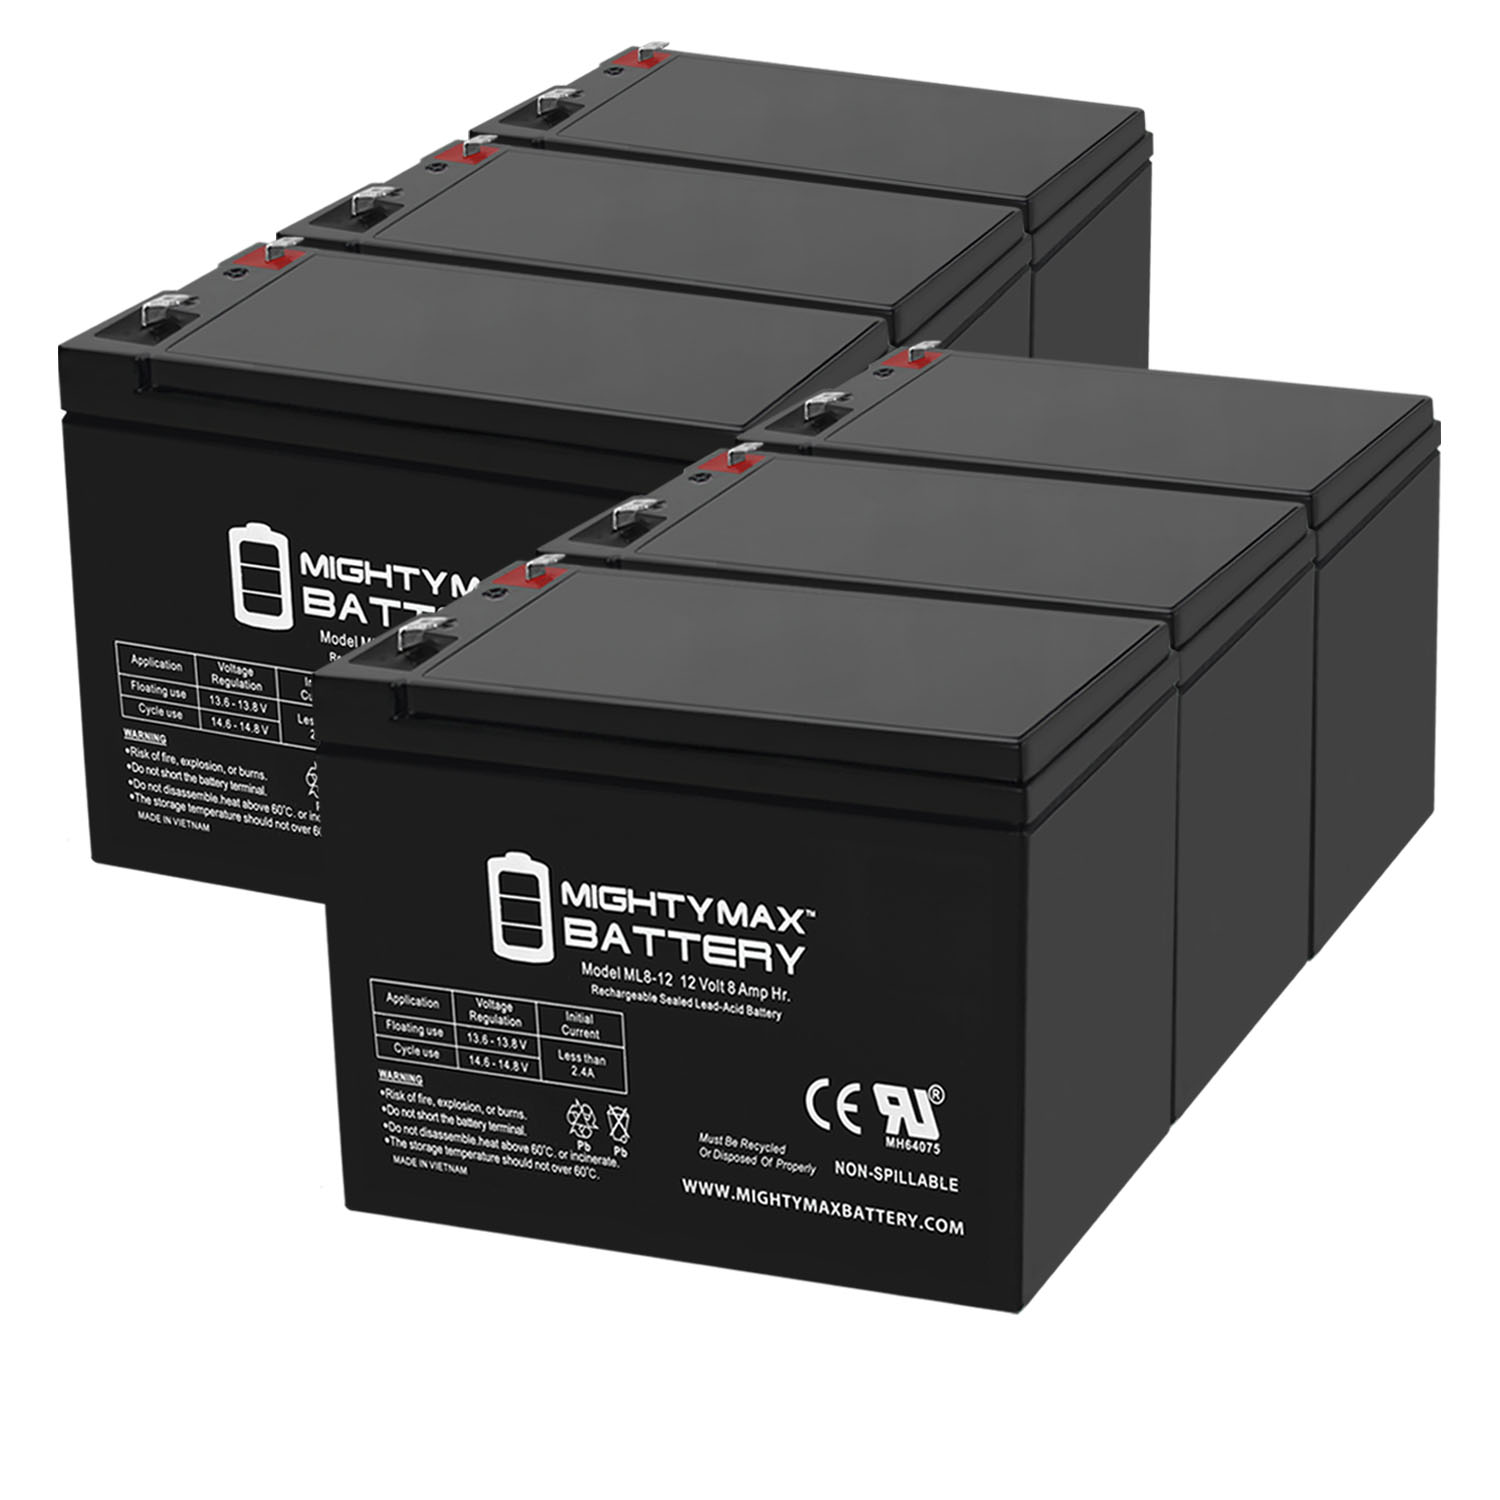 ML8-12 - 12V 8AH Replacement for Leoch Peg Perego DJW12-8HD Battery - 6 Pack